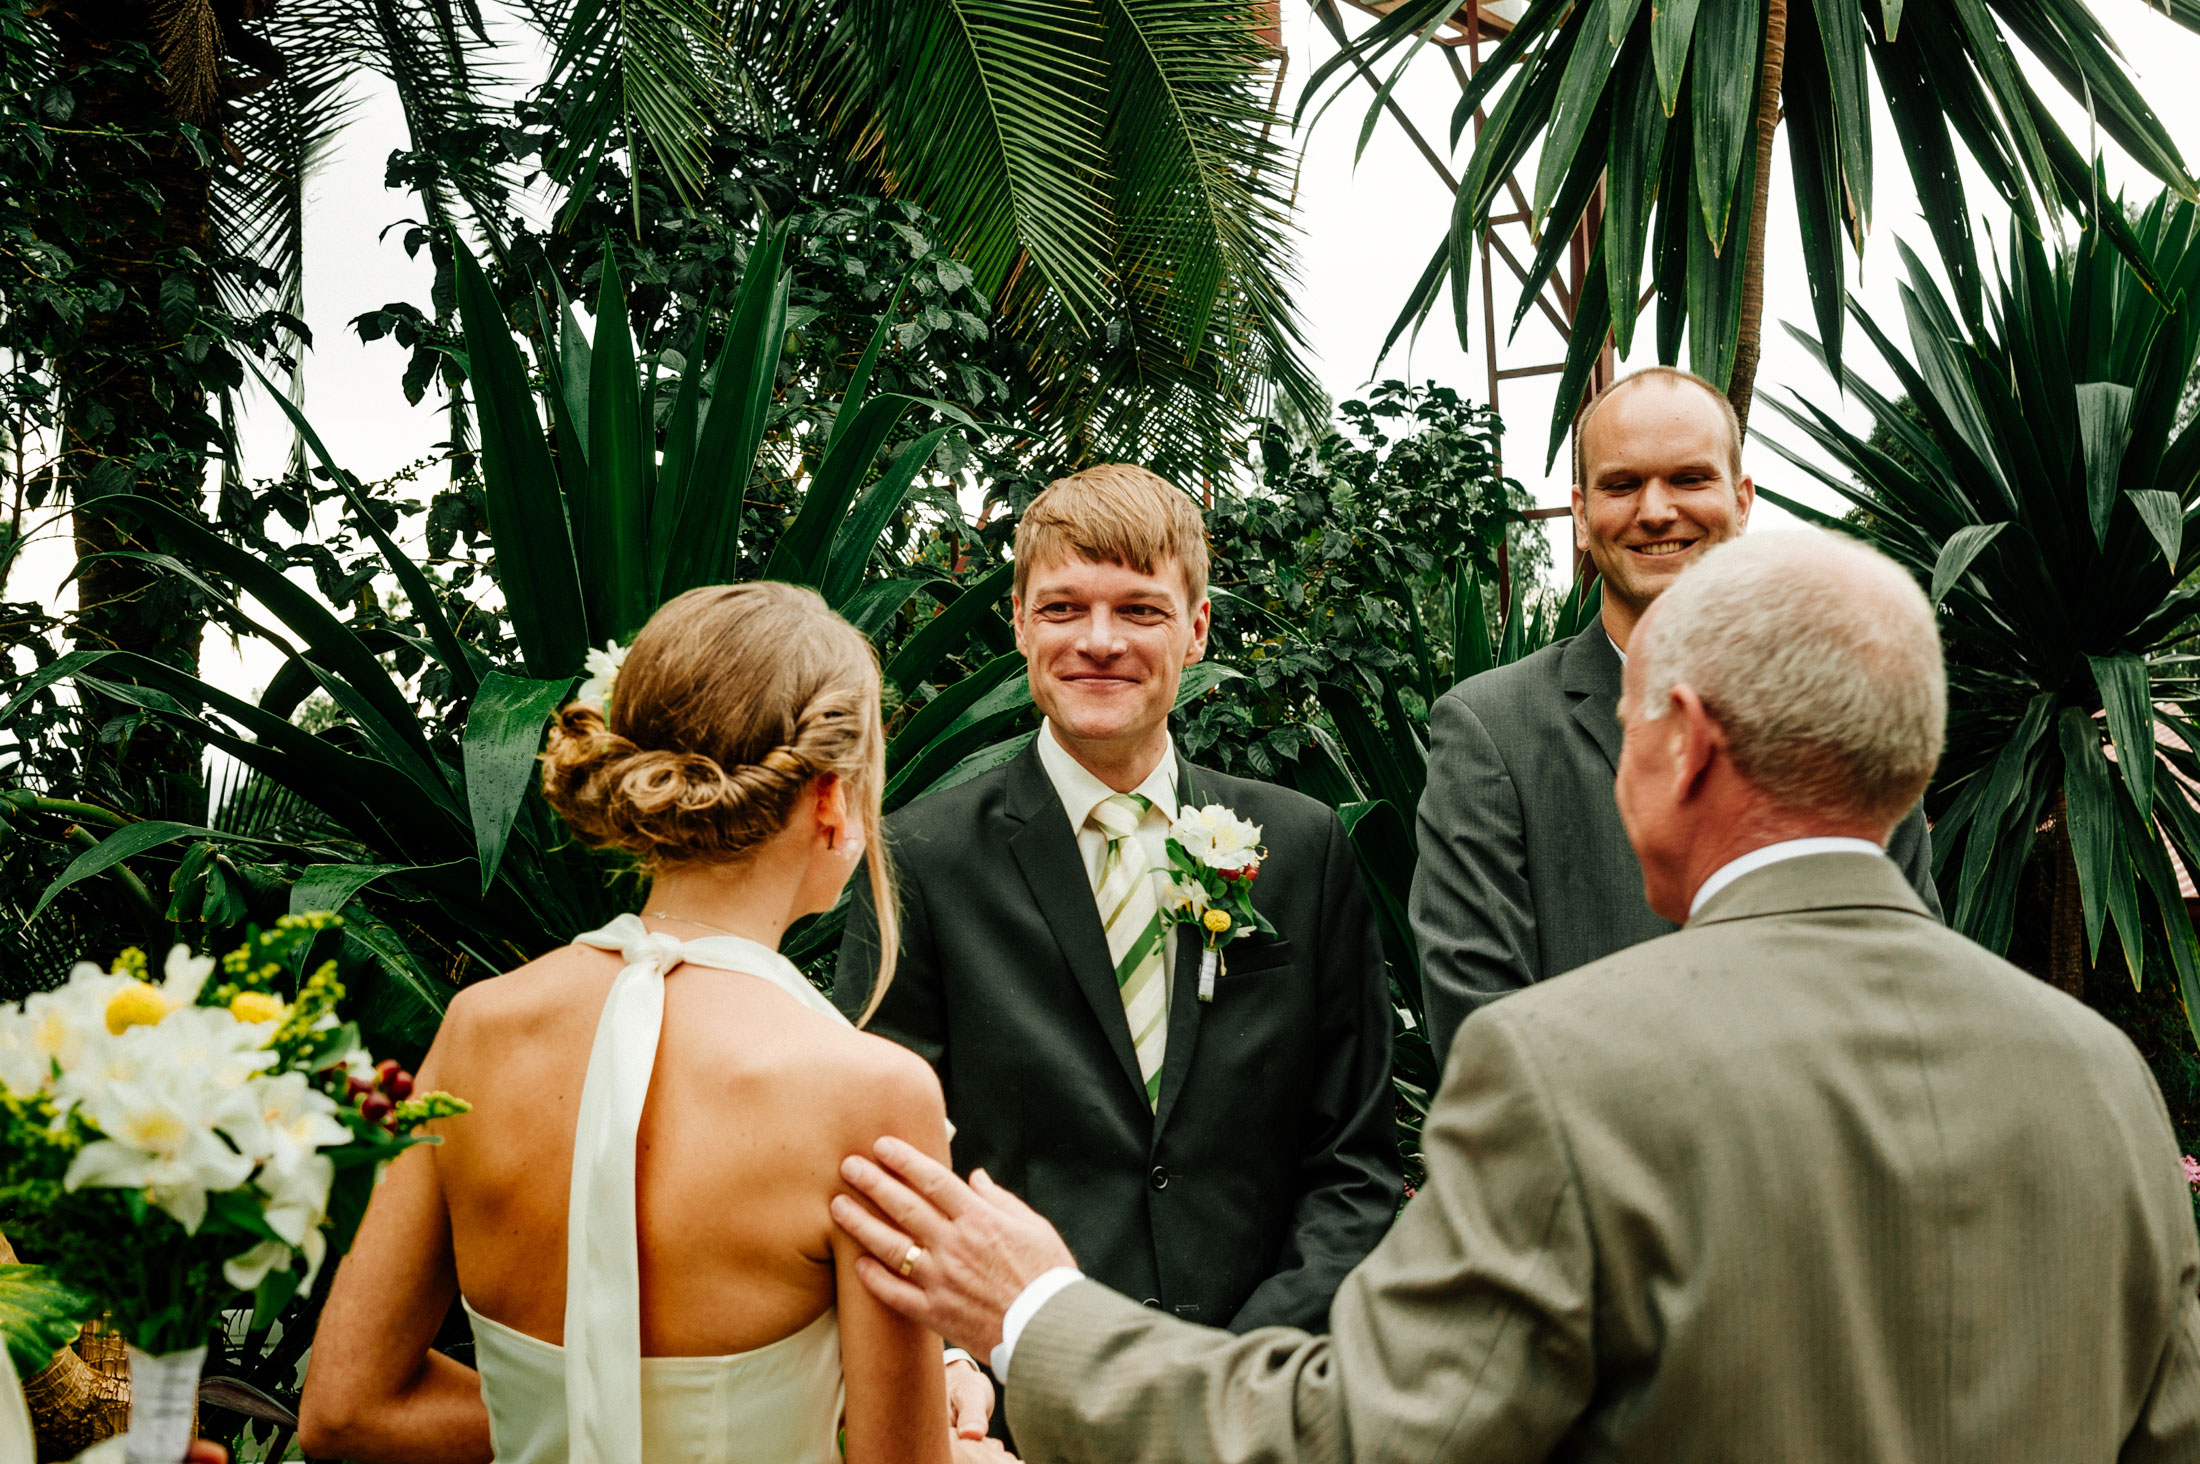 Bride meets her groom at the altar with her father backyard garden ceremony in Addis Ababa; photographed by Northern California Offbeat Wedding photographer Kate Donaldson Photography.